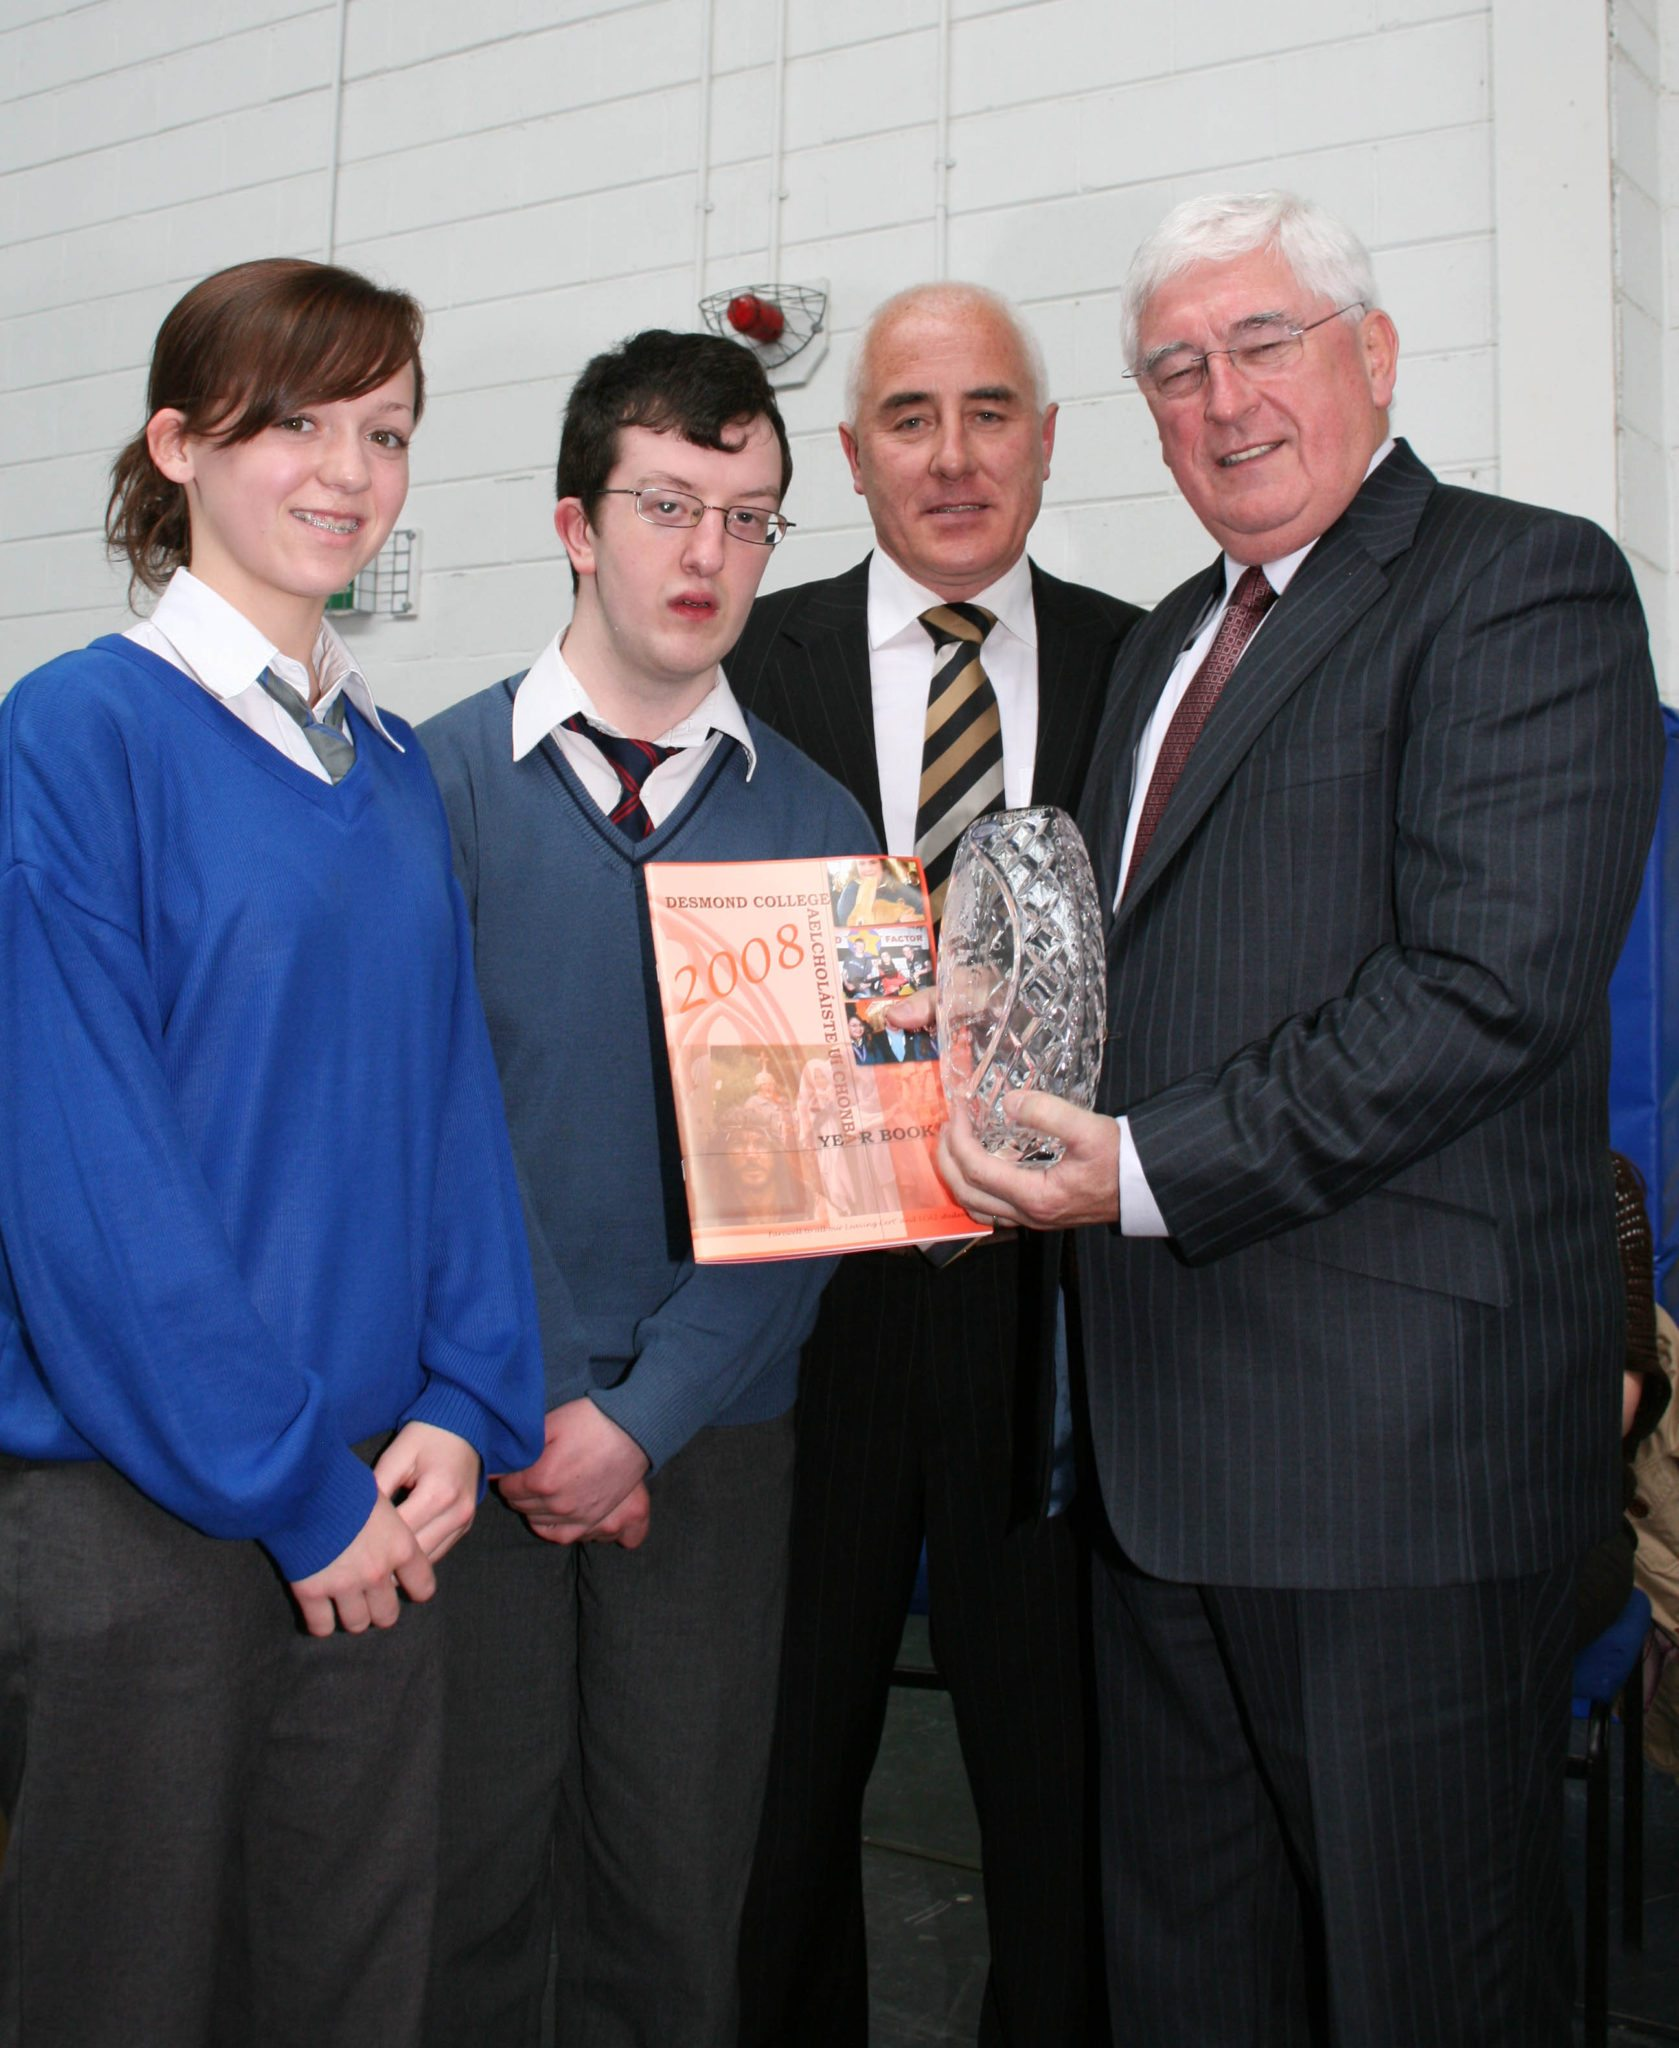 2008 : Visit of Minister of Education Mr Batt OKeeffe to Desmond College